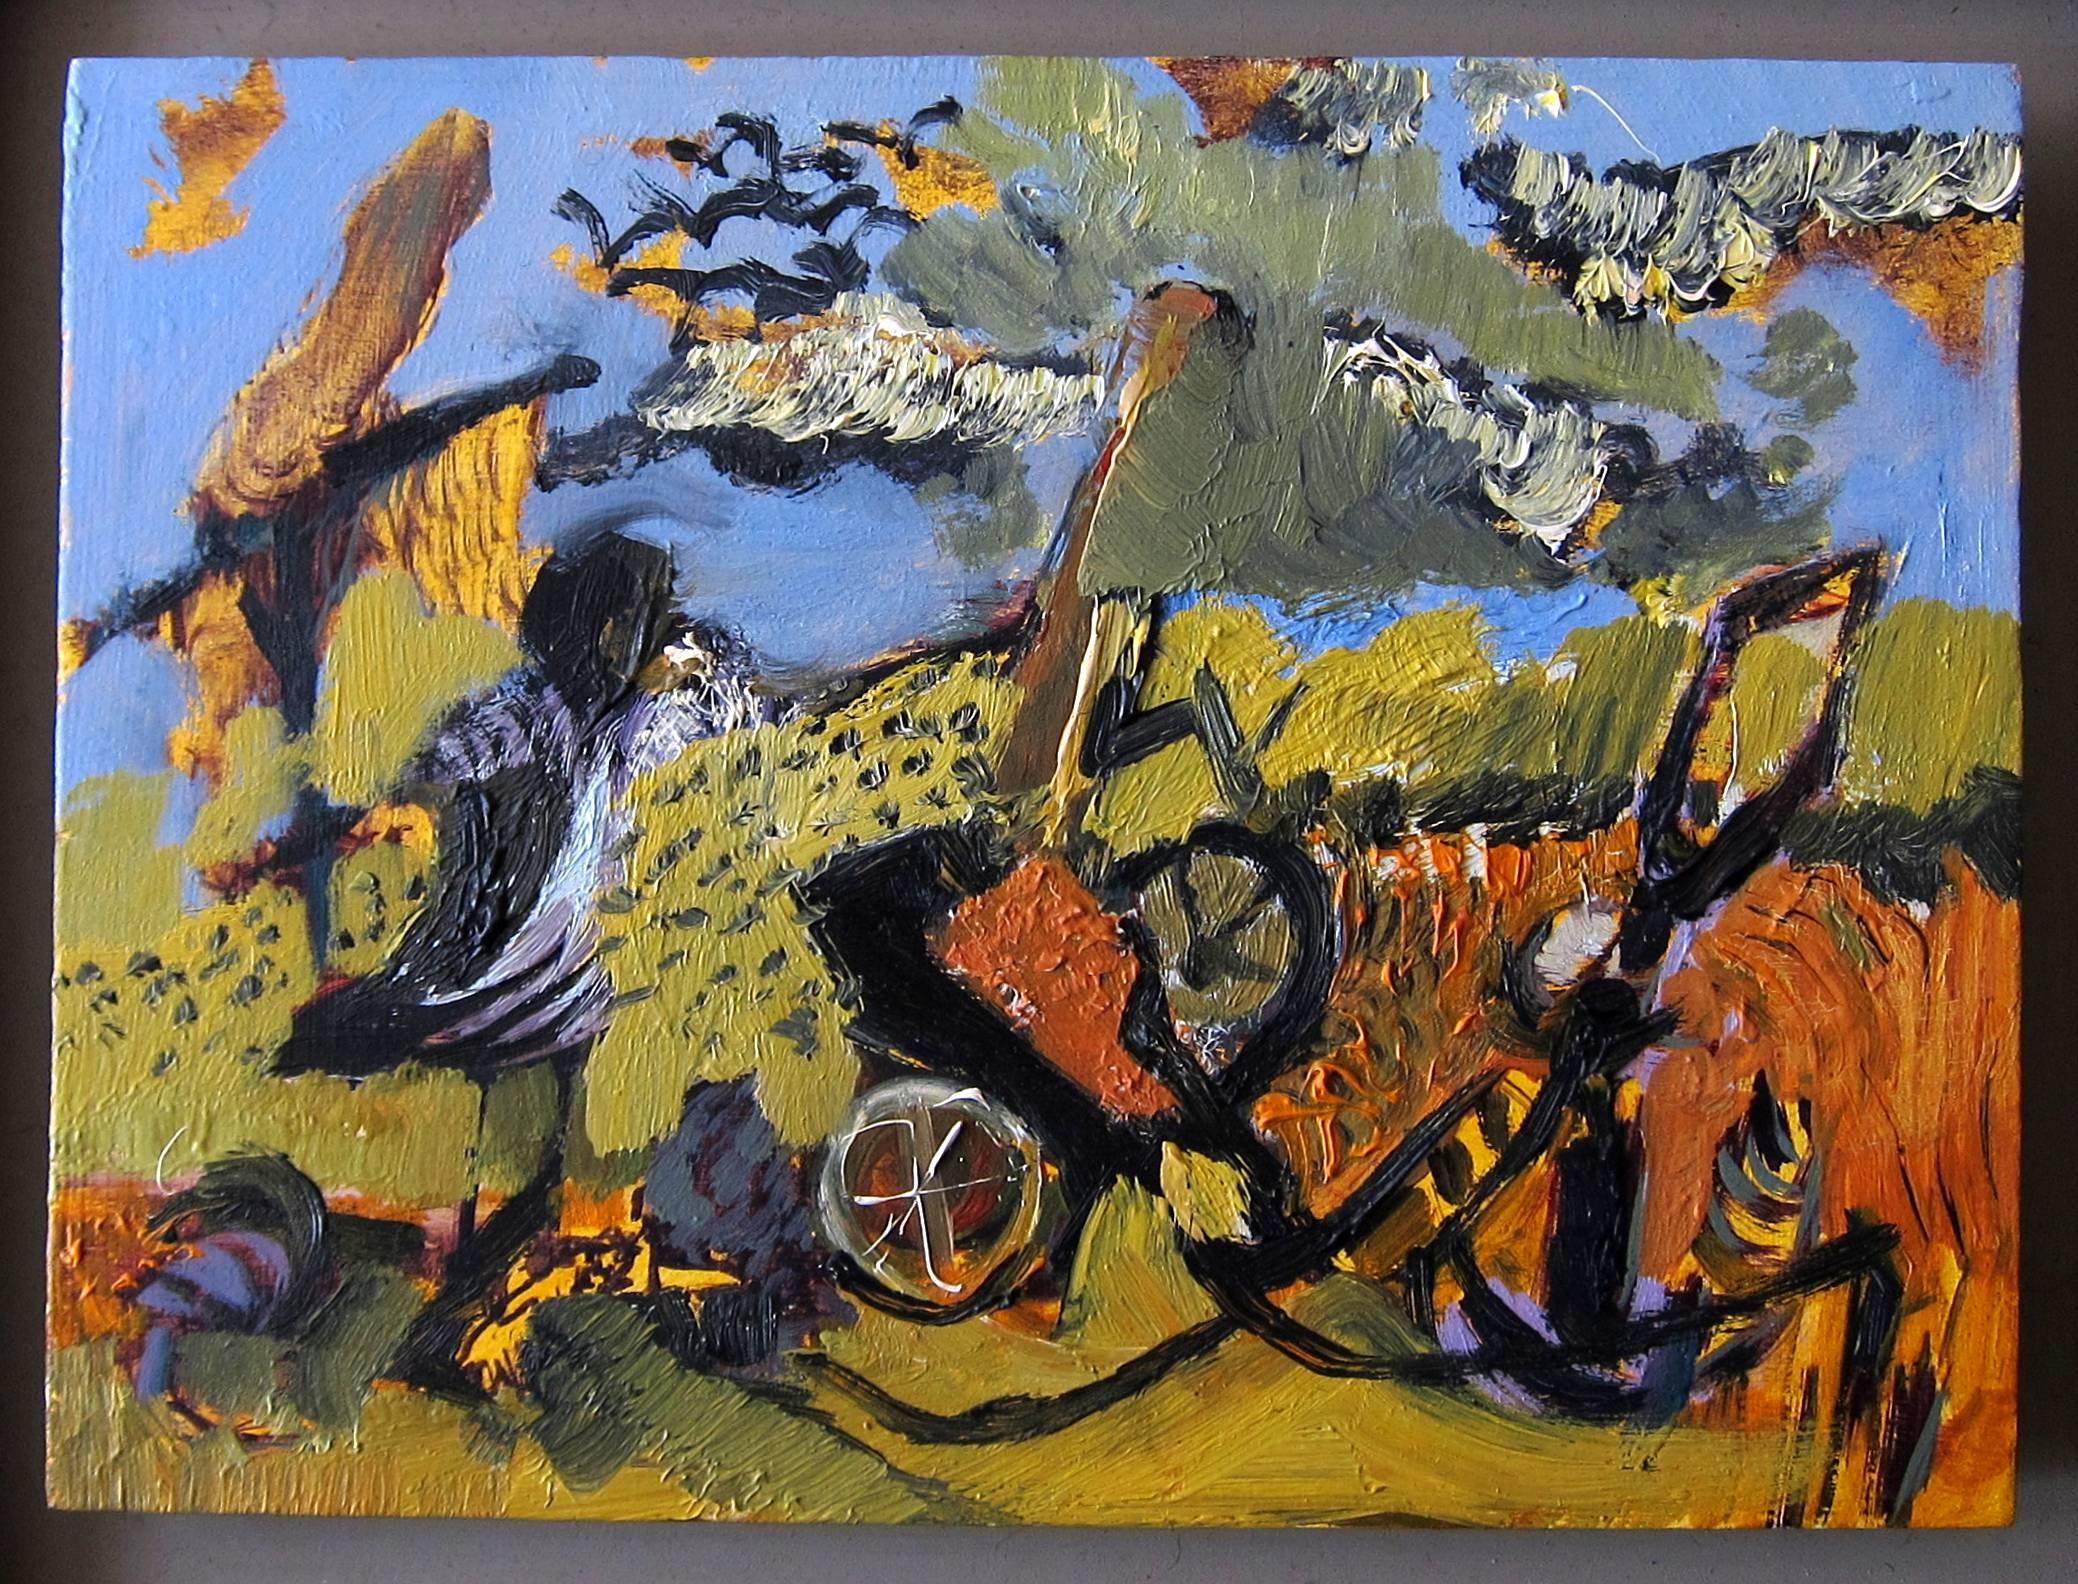 Lot 37 - MAURICE COCKRILL R.A. [1936-2013]. Broken Cart, 1988 oil on board, apparently signed on the reverse,